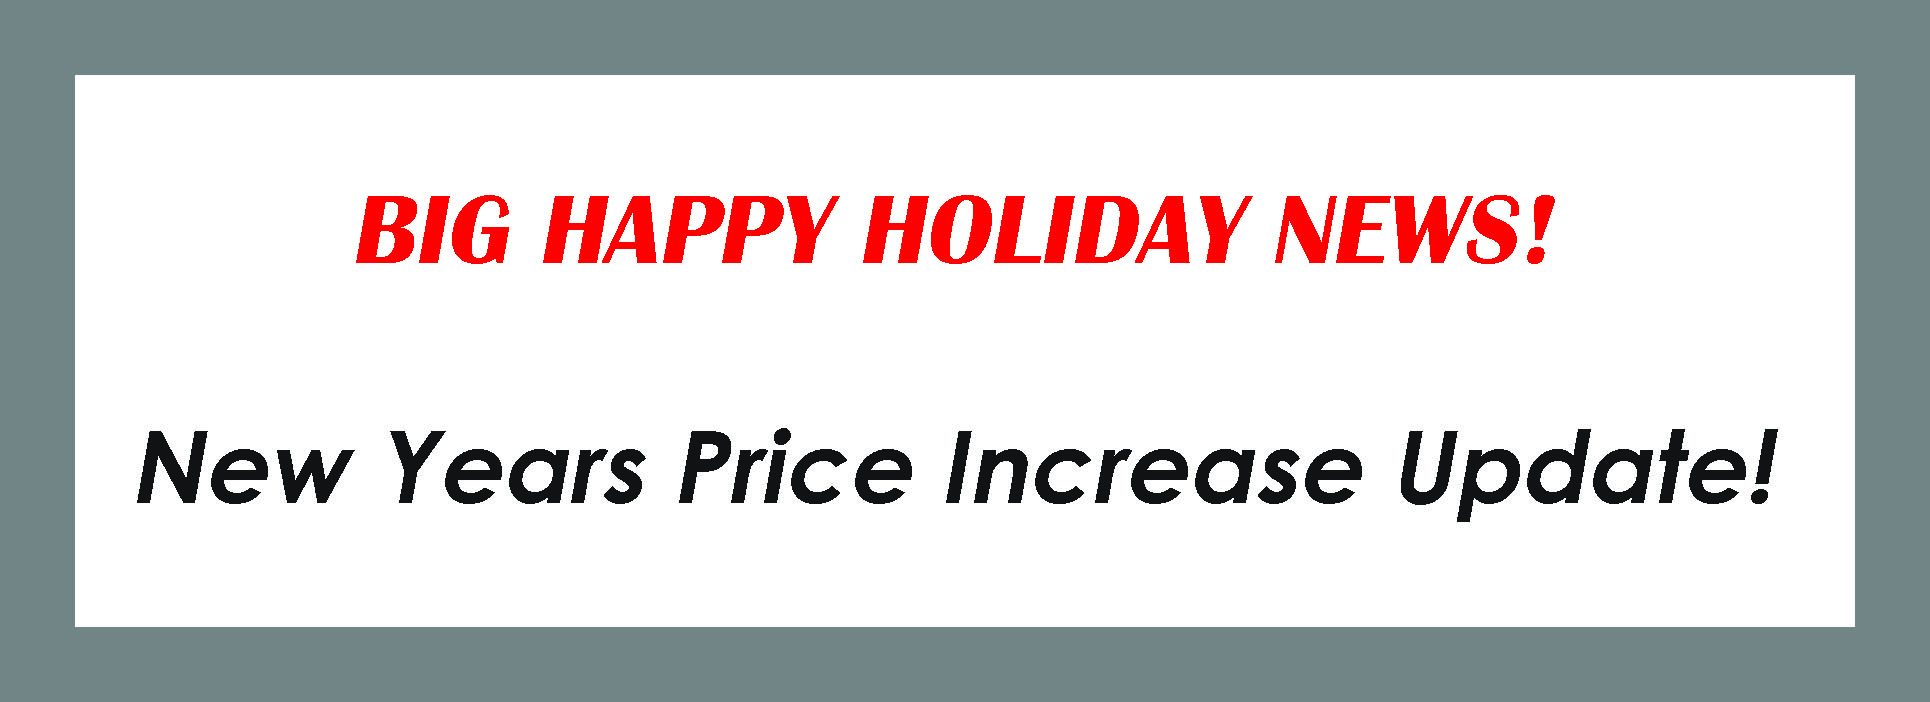 Happy Holiday News